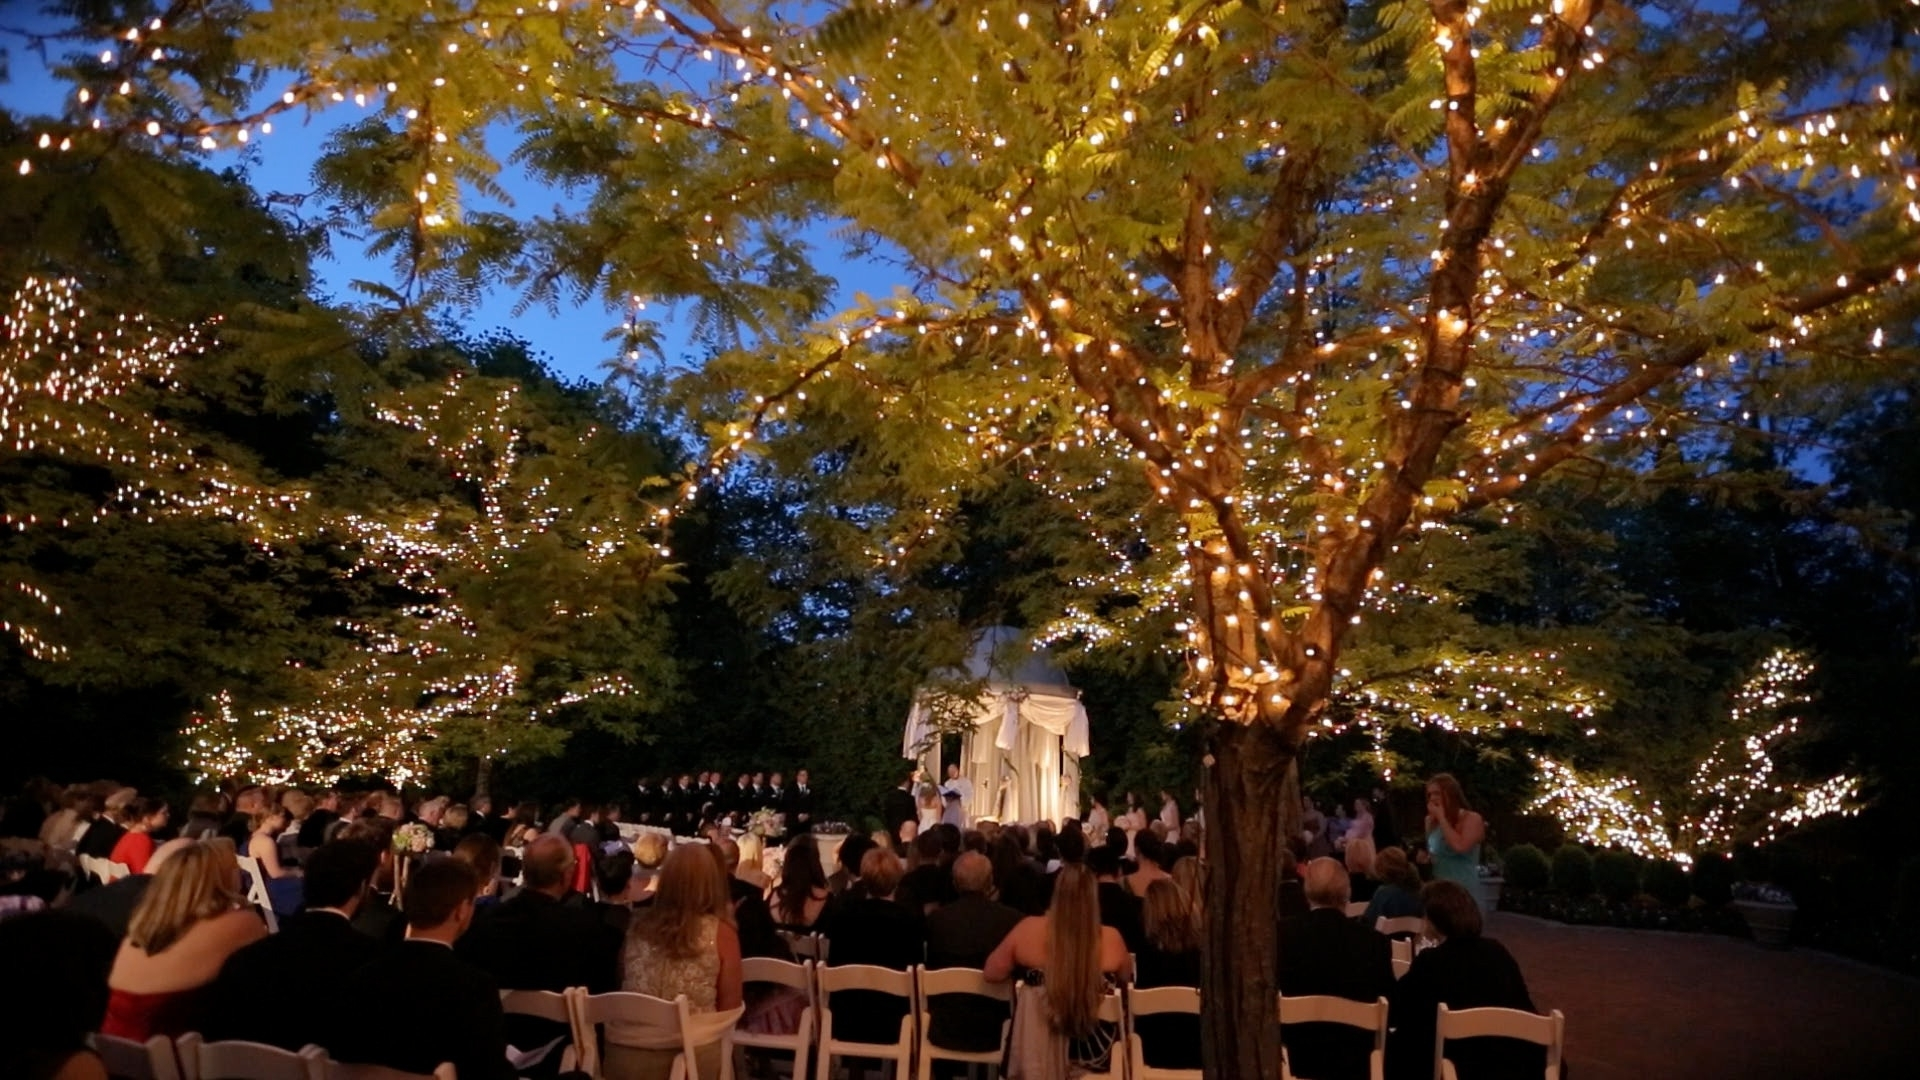 Outdoor Lanterns For Wedding With Regard To 2019 Wedding Lighting Ideas Outdoors Uncategorized 33 Outdoor Party (View 9 of 20)